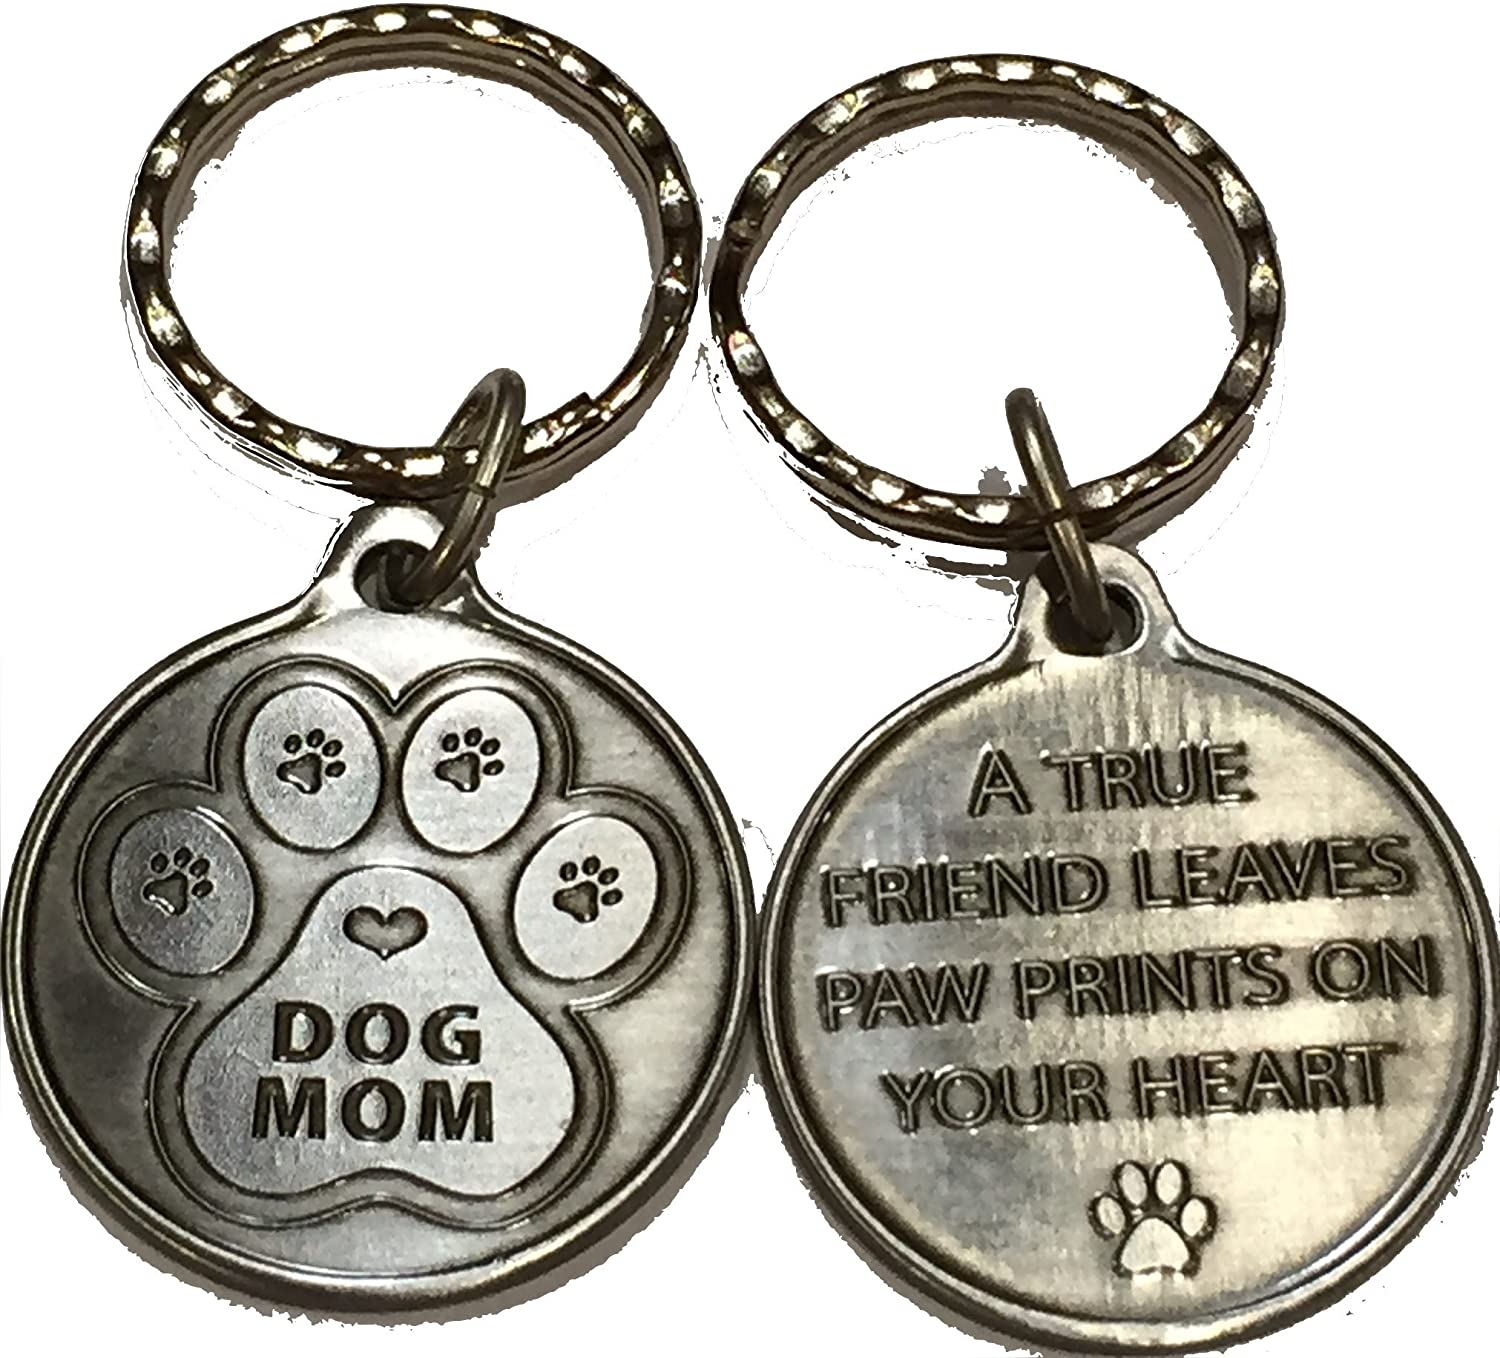 Dog Mom - A True Friend Leaves Paw Prints On Your Heart Keychain Pewter Color RecoveryChip DMBELoopN